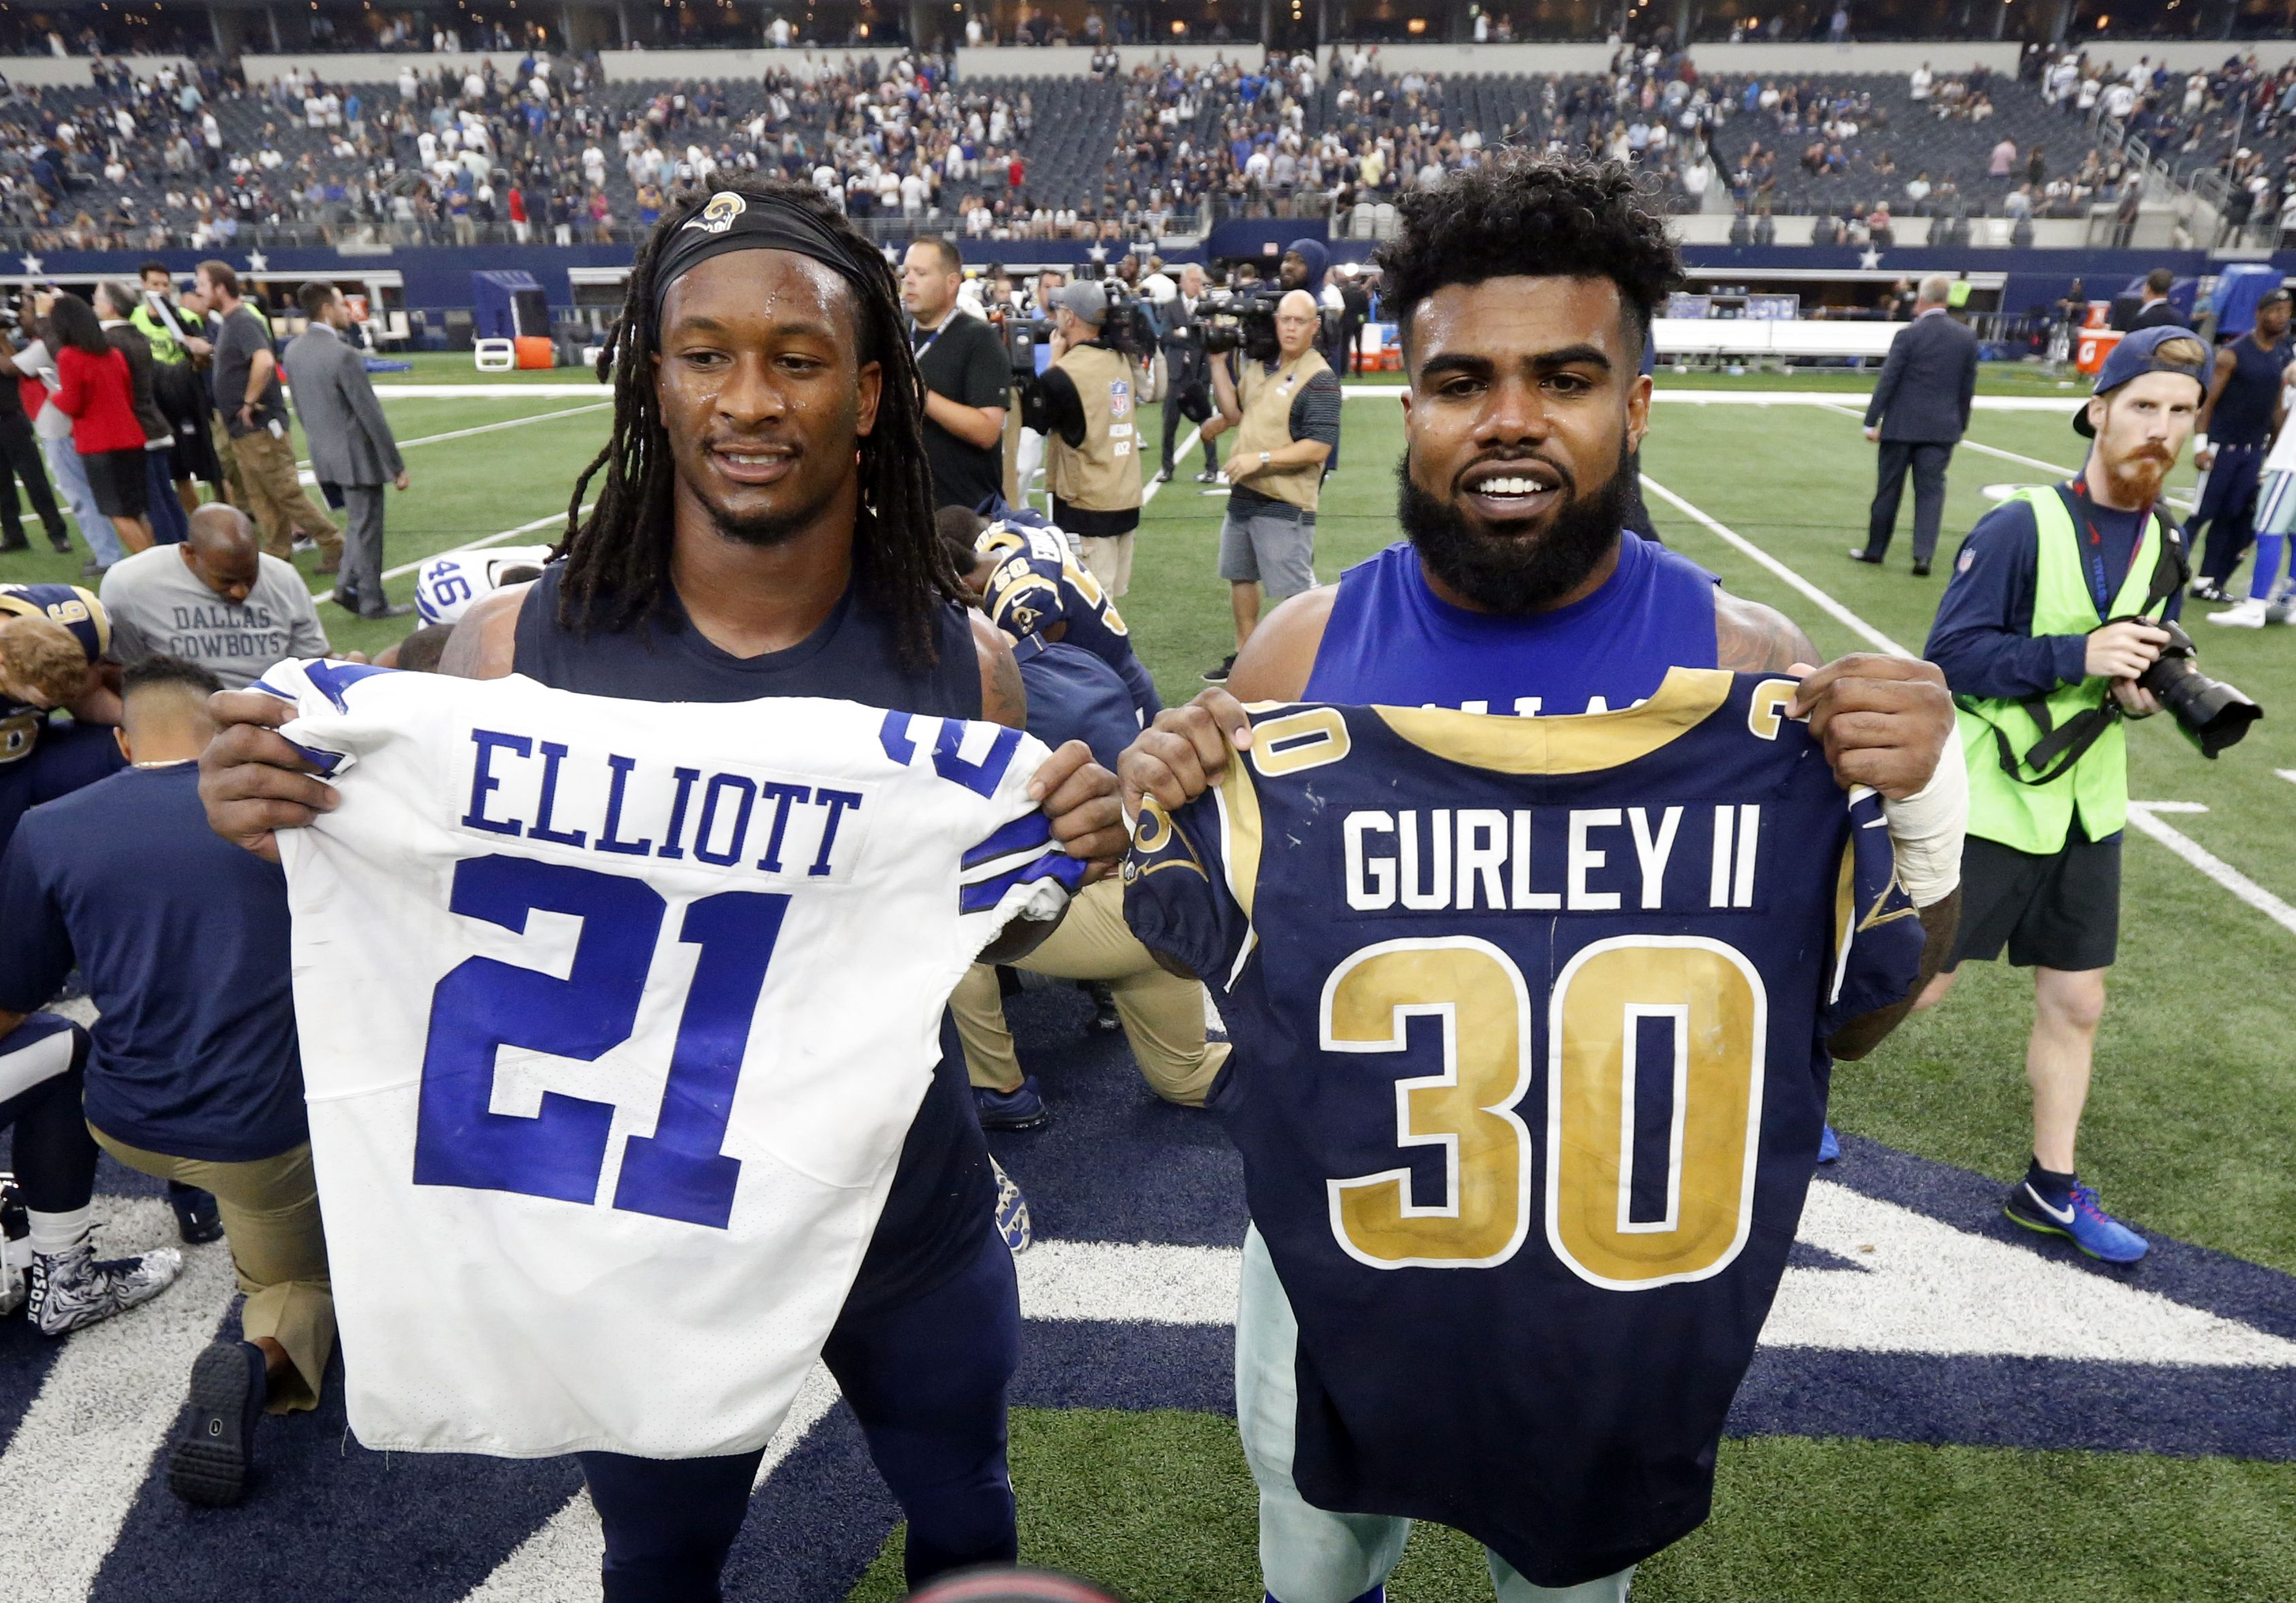 An Nfl Fantasy Duo Like None Other Todd Gurley Ii And Ezekiel Elliott Swapping Jerseys After The Game Ap Ainsworth Nfl News Nfl Nfl Players